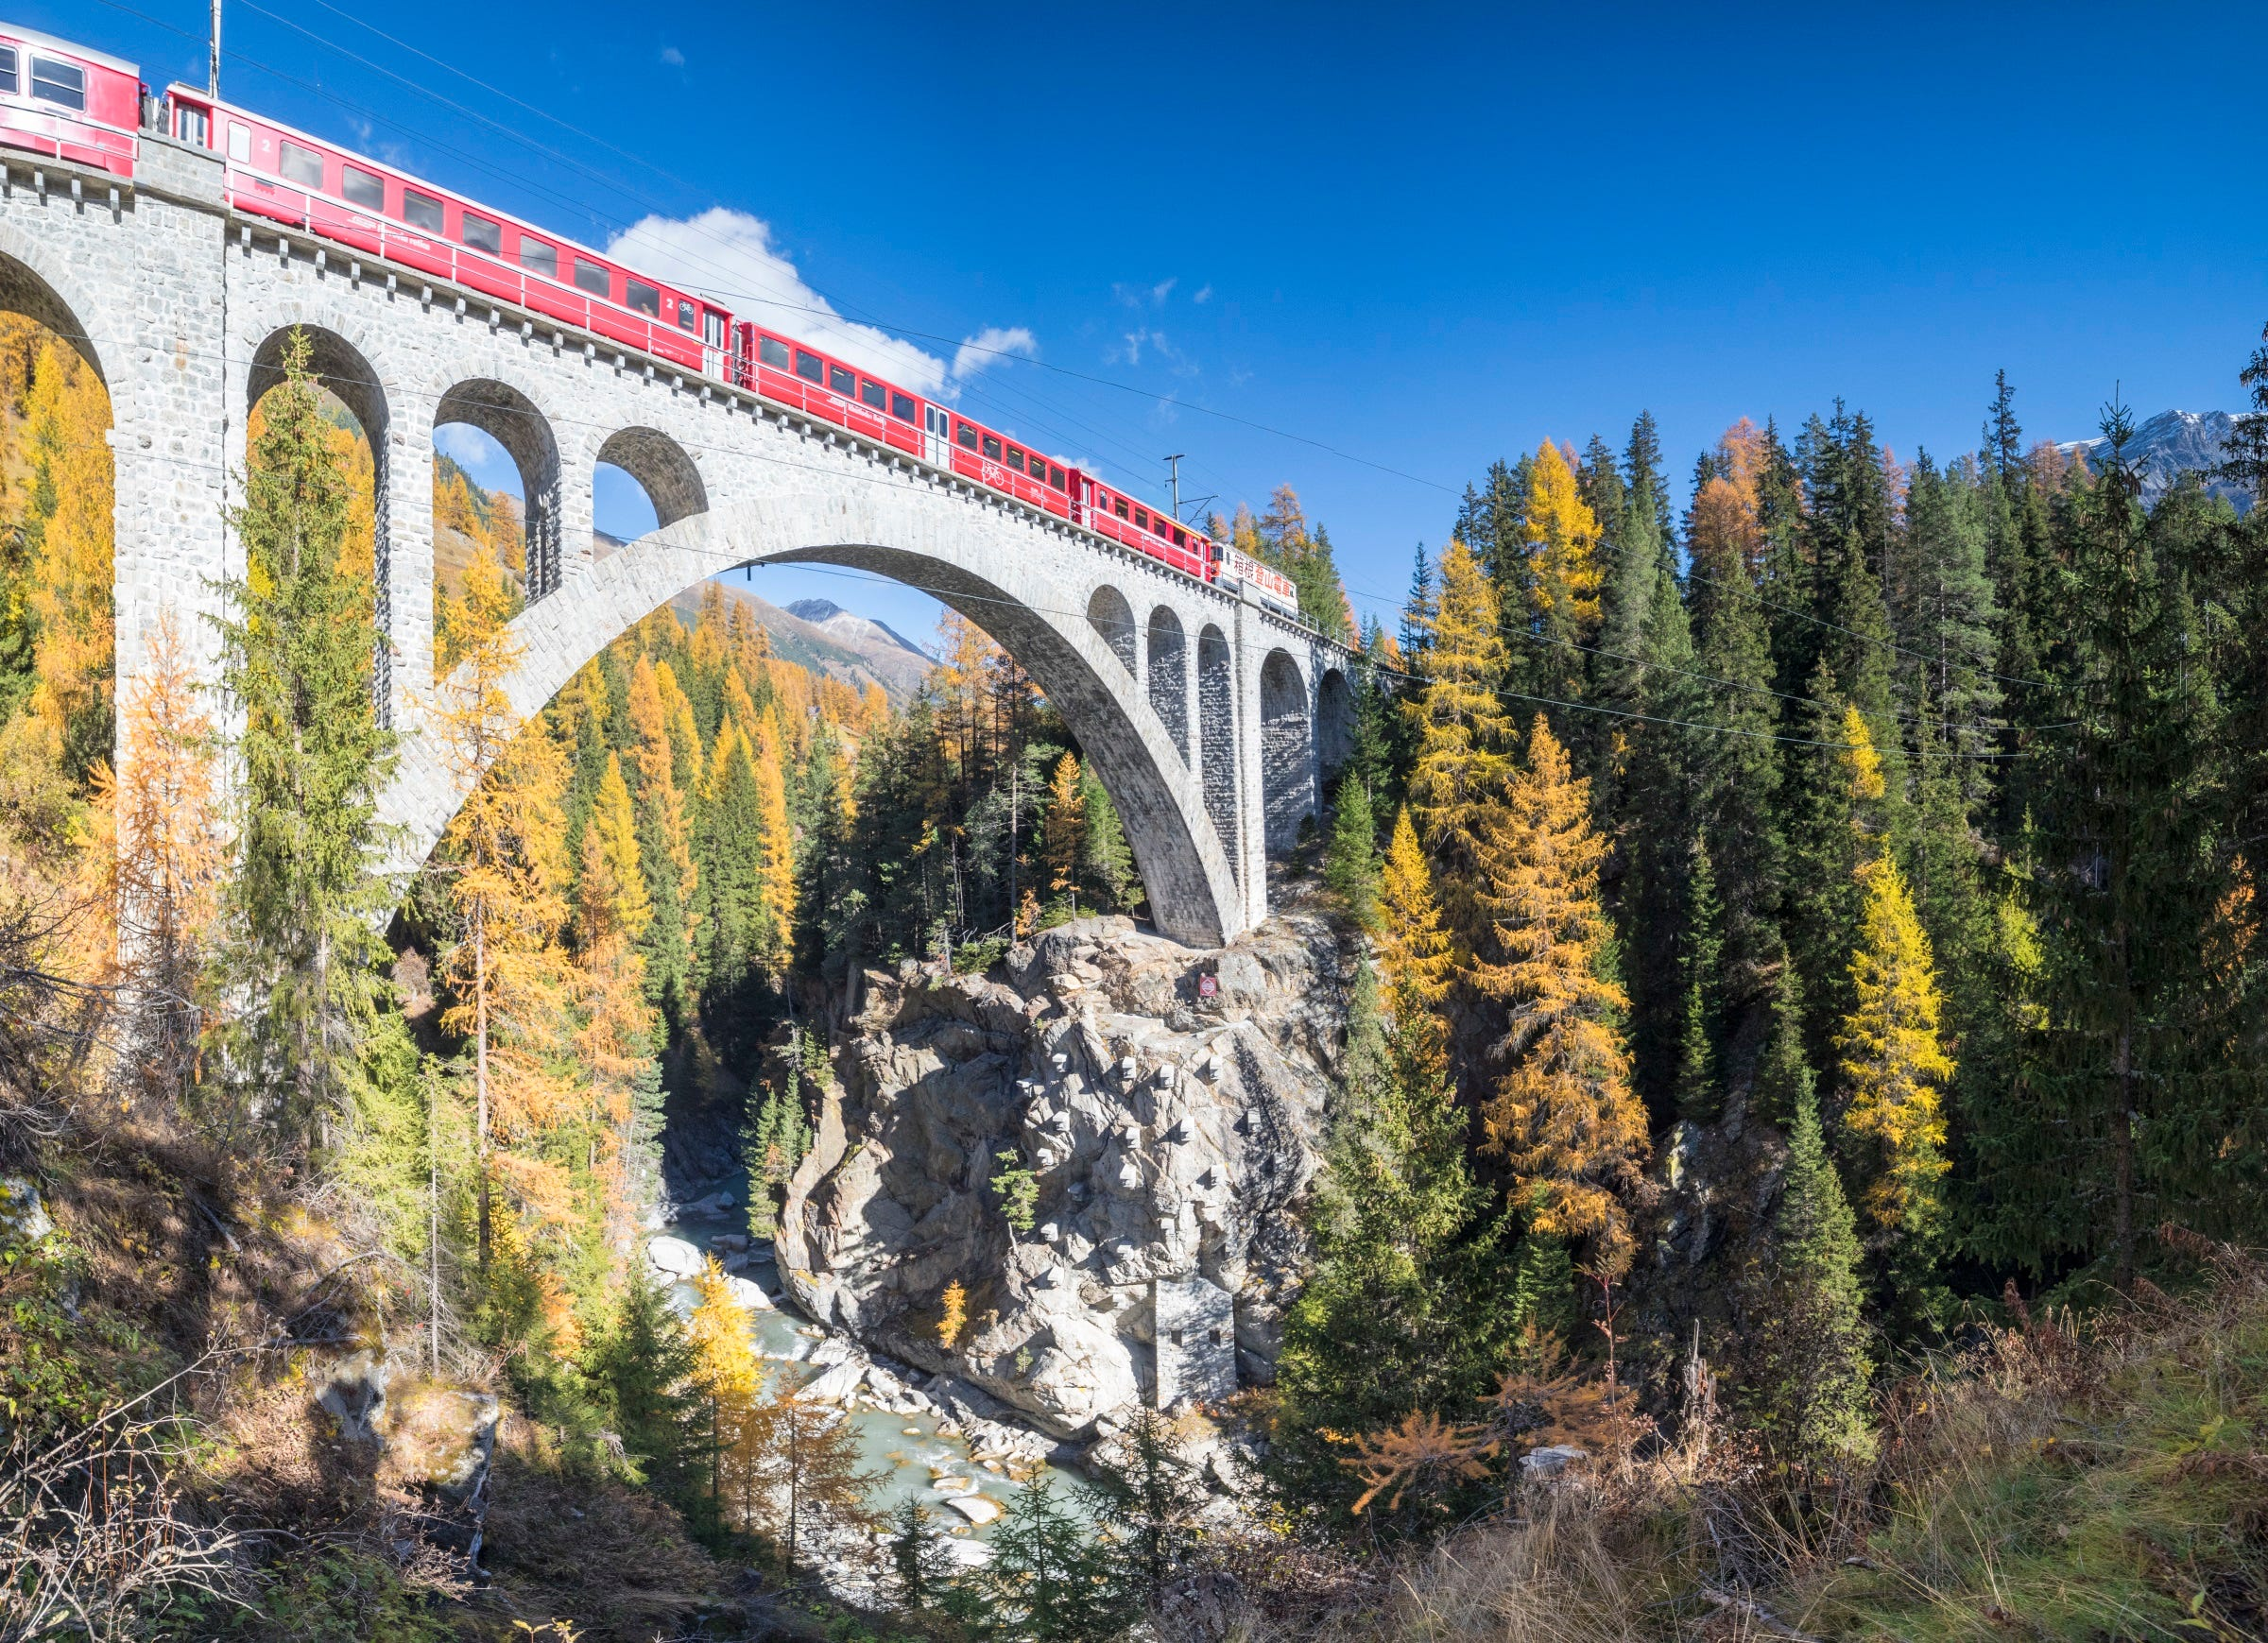 Lonely Planet picks the world's most amazing train rides